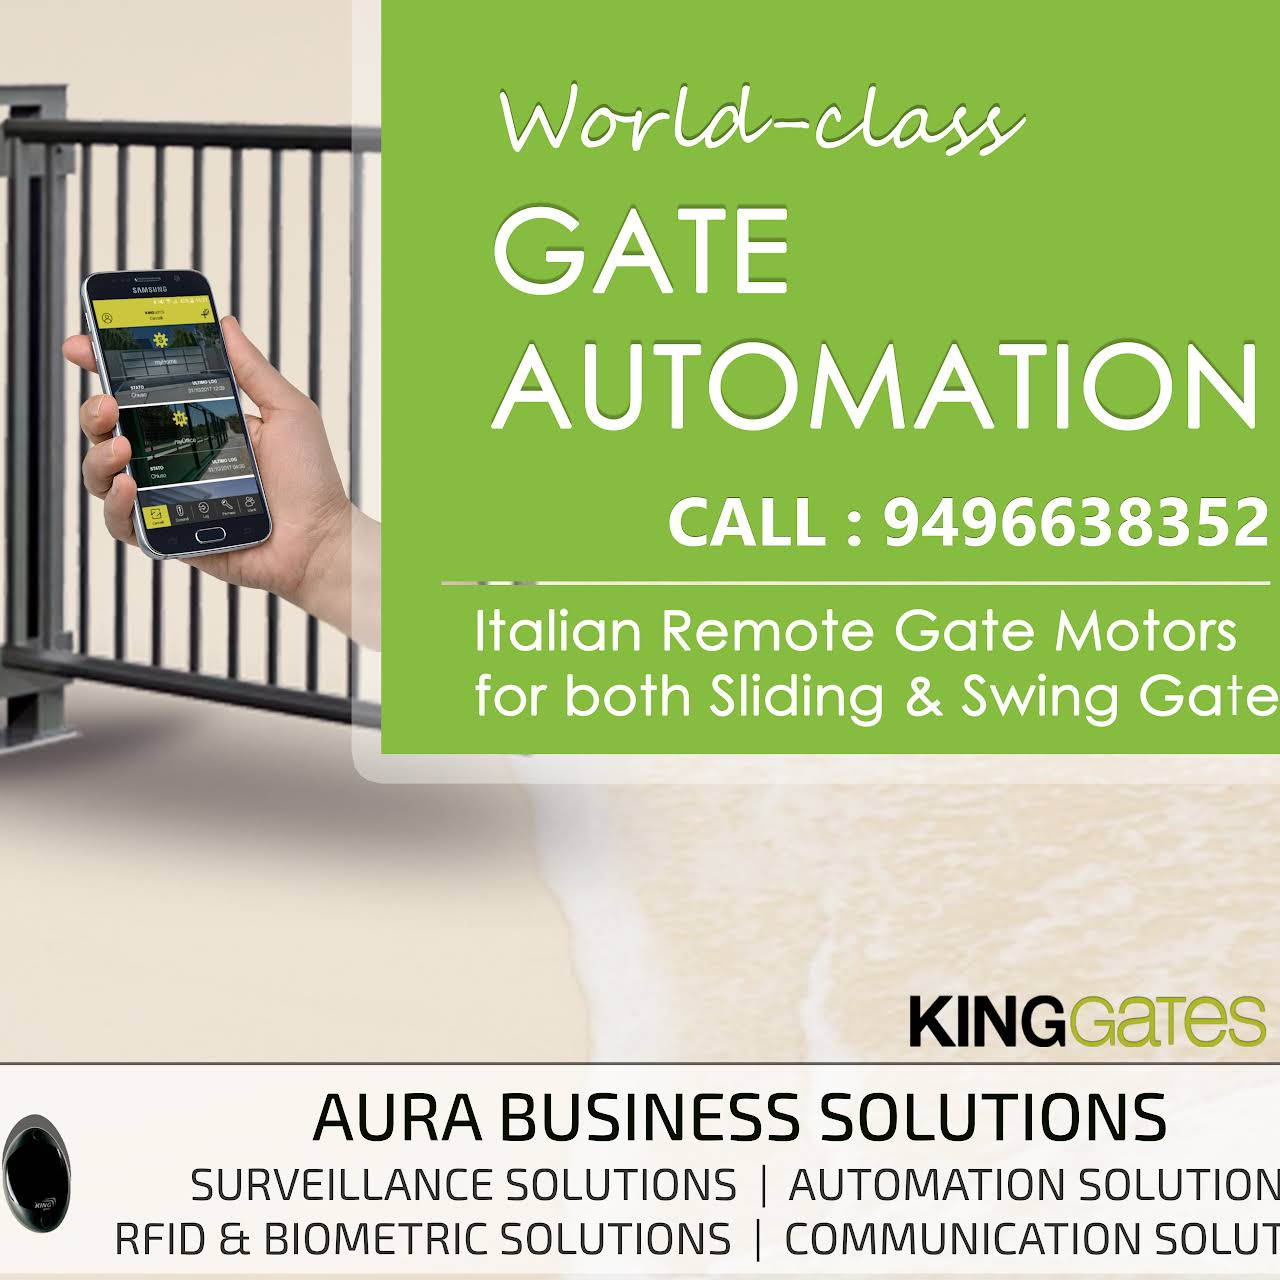 Aura Business Solutions - CCTV, Security Systems Dealer in